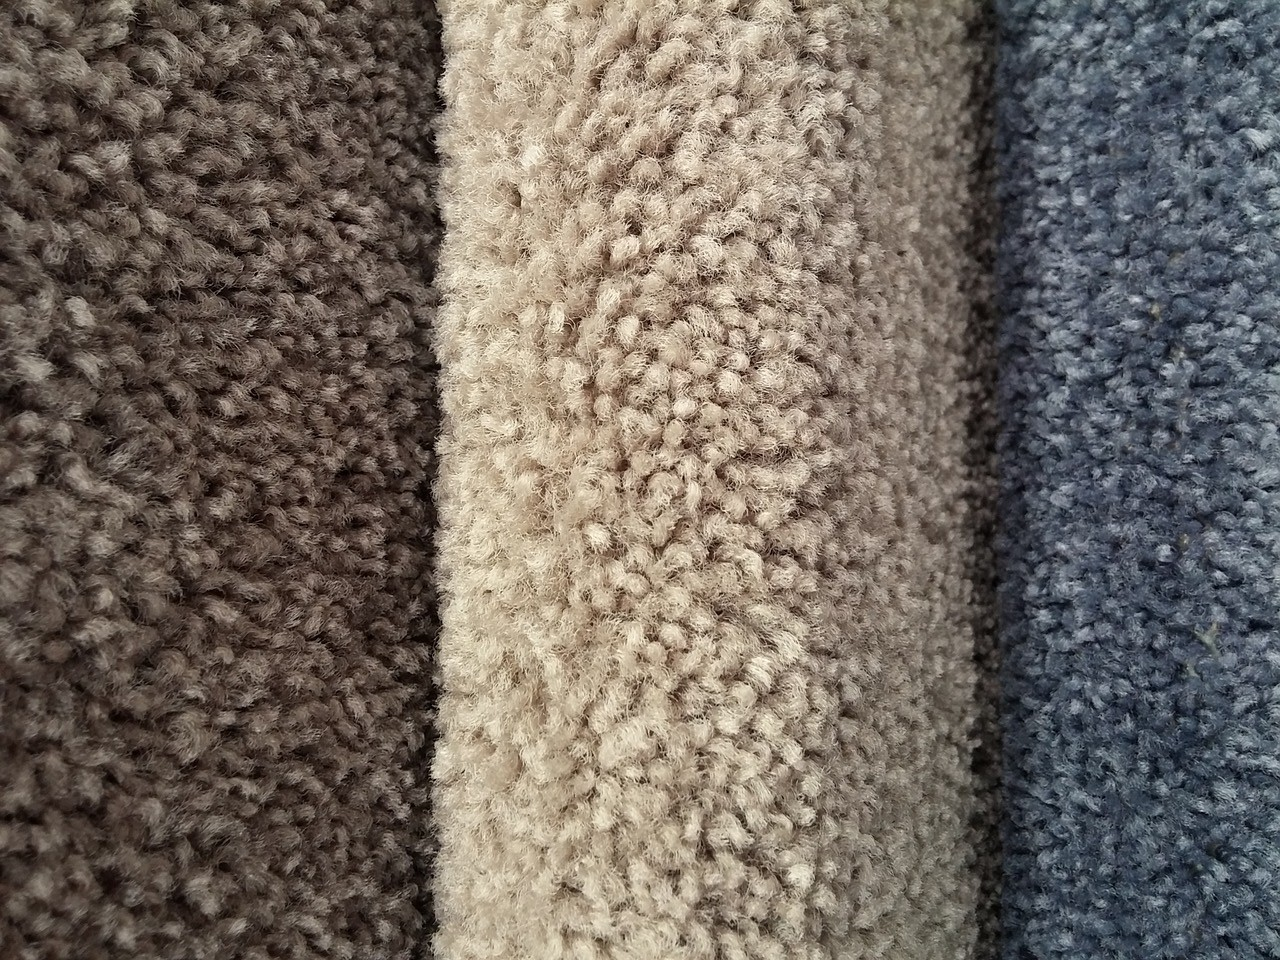 Solution dyed carpeting is a great choice for your home.